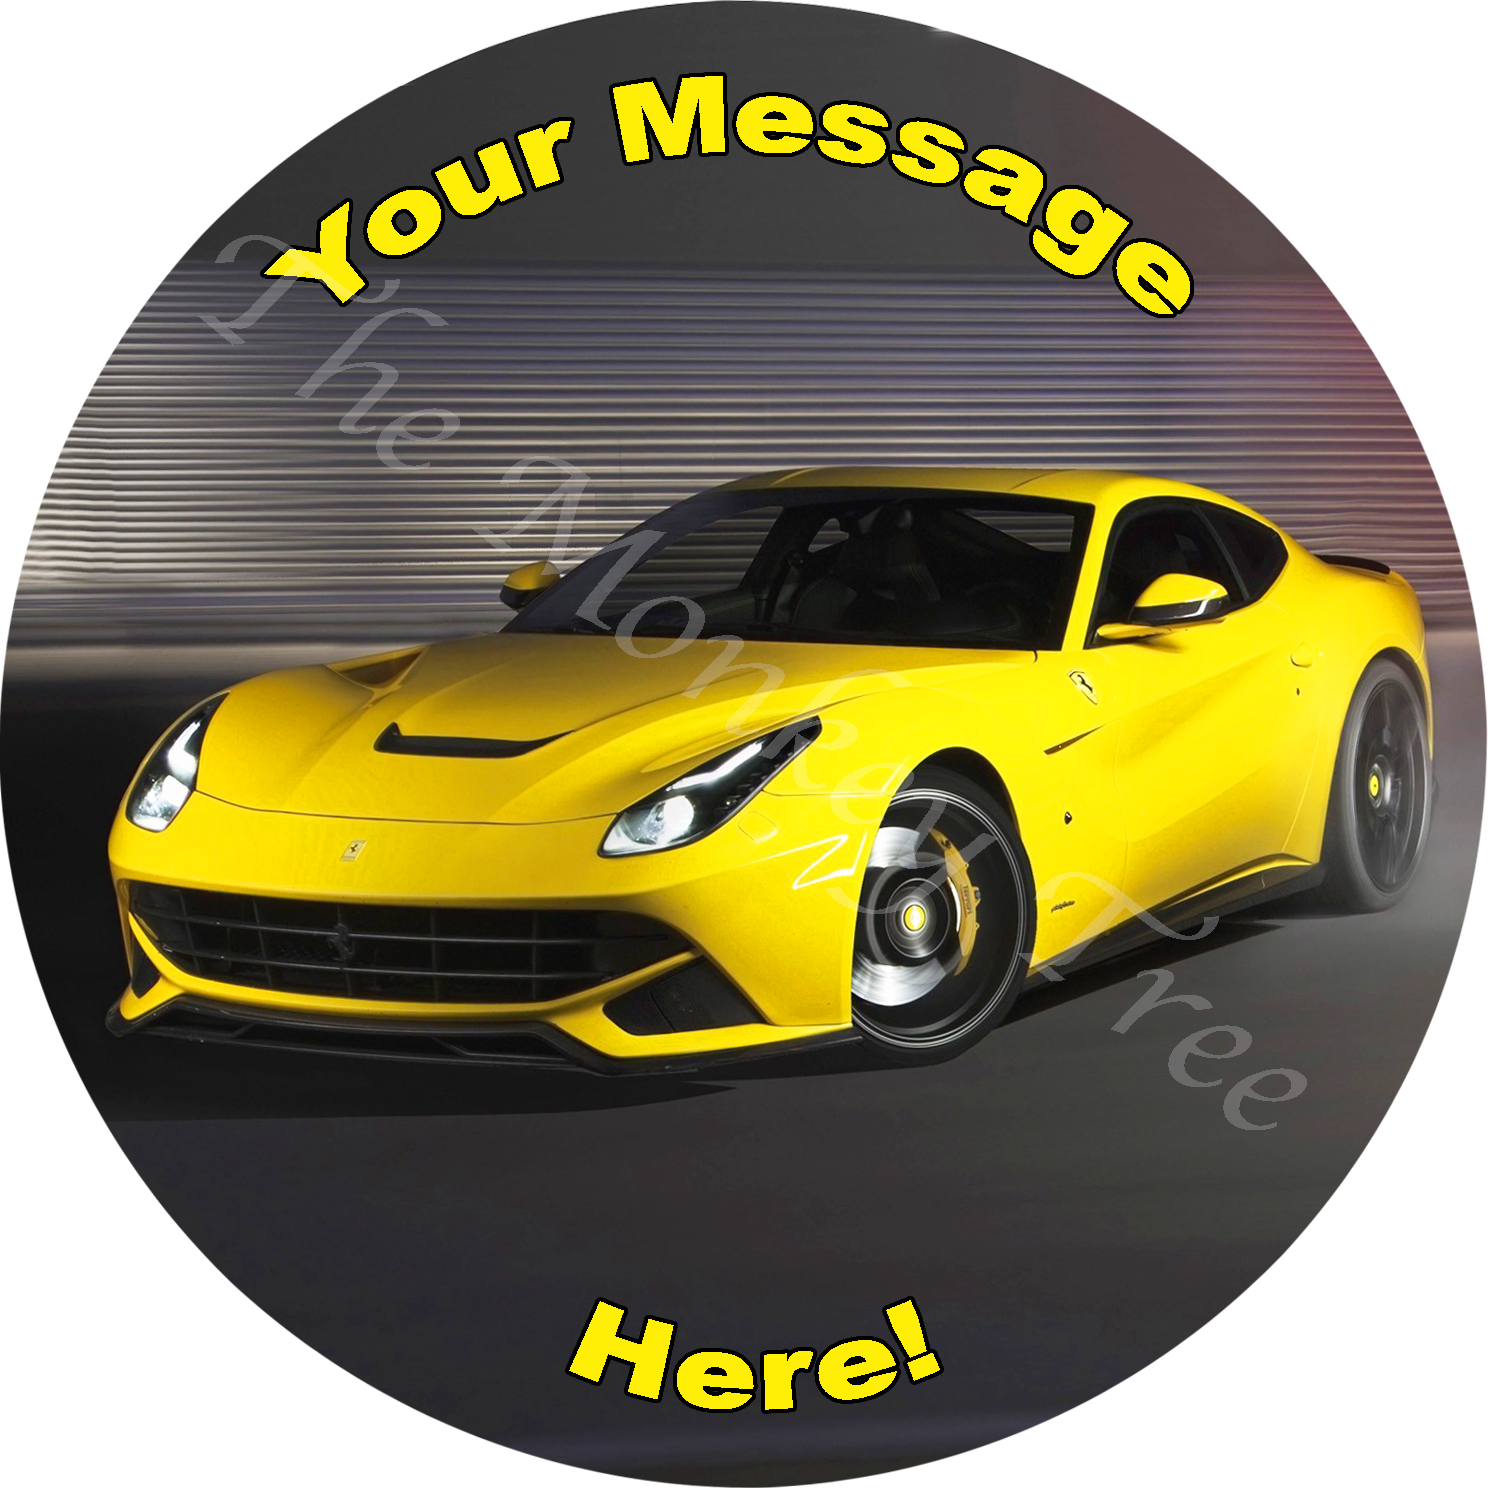 Ferrari f12 yellow car edible icing image cake topper birthday fast car